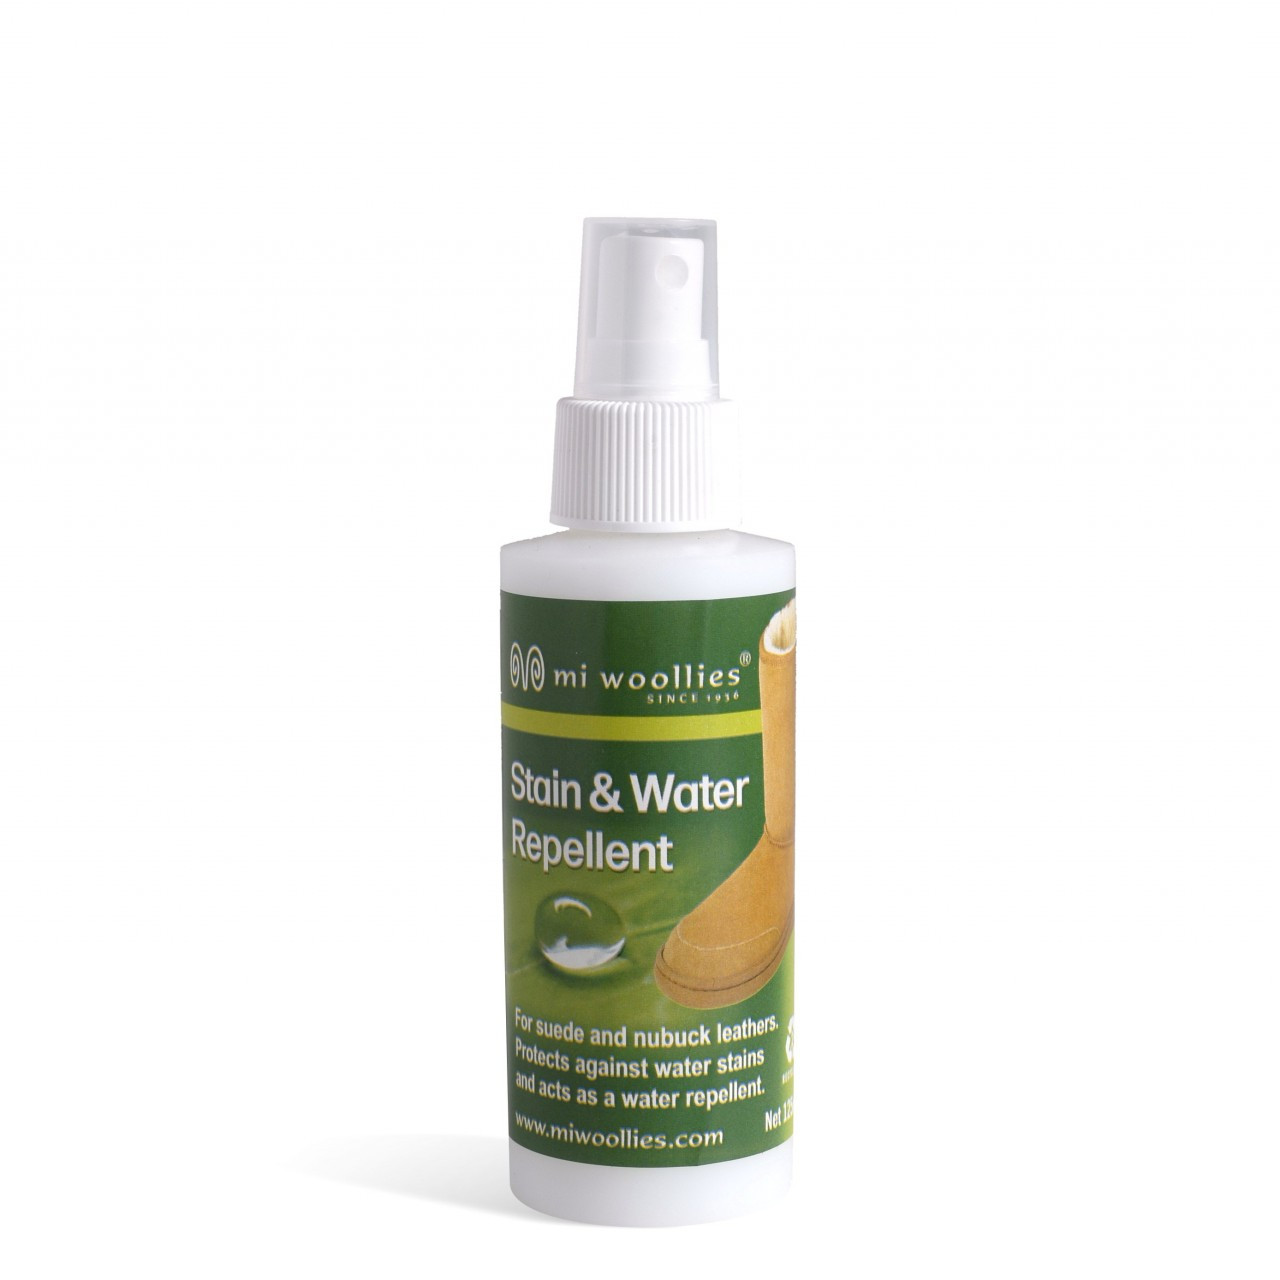 Stain & Water Repellent